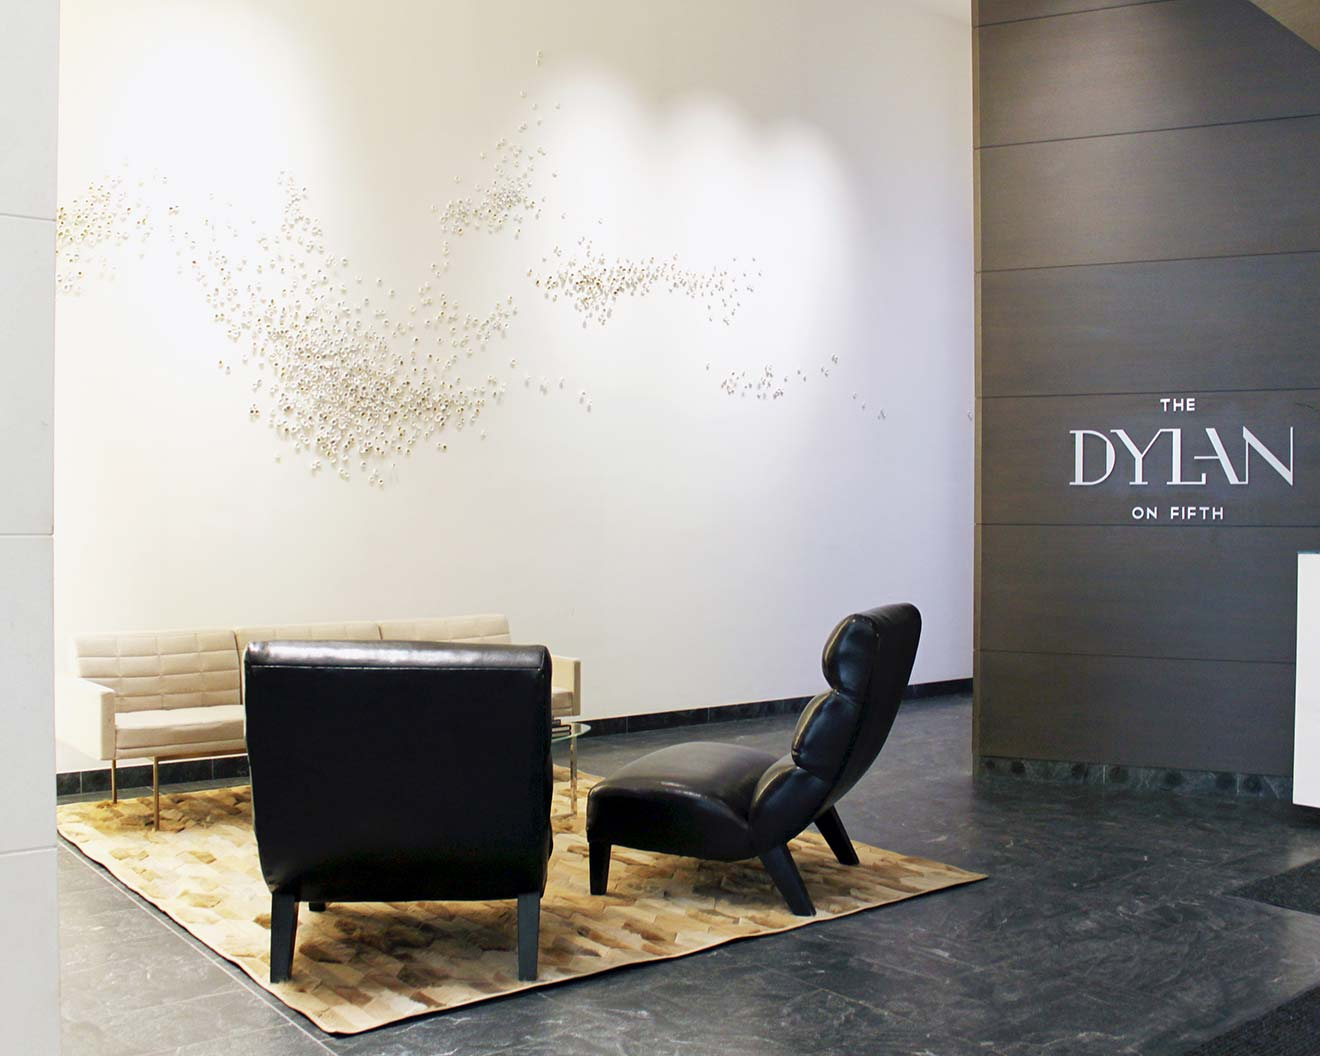 Artist Christina Watka's lobby installation at The Dylan on Fifth